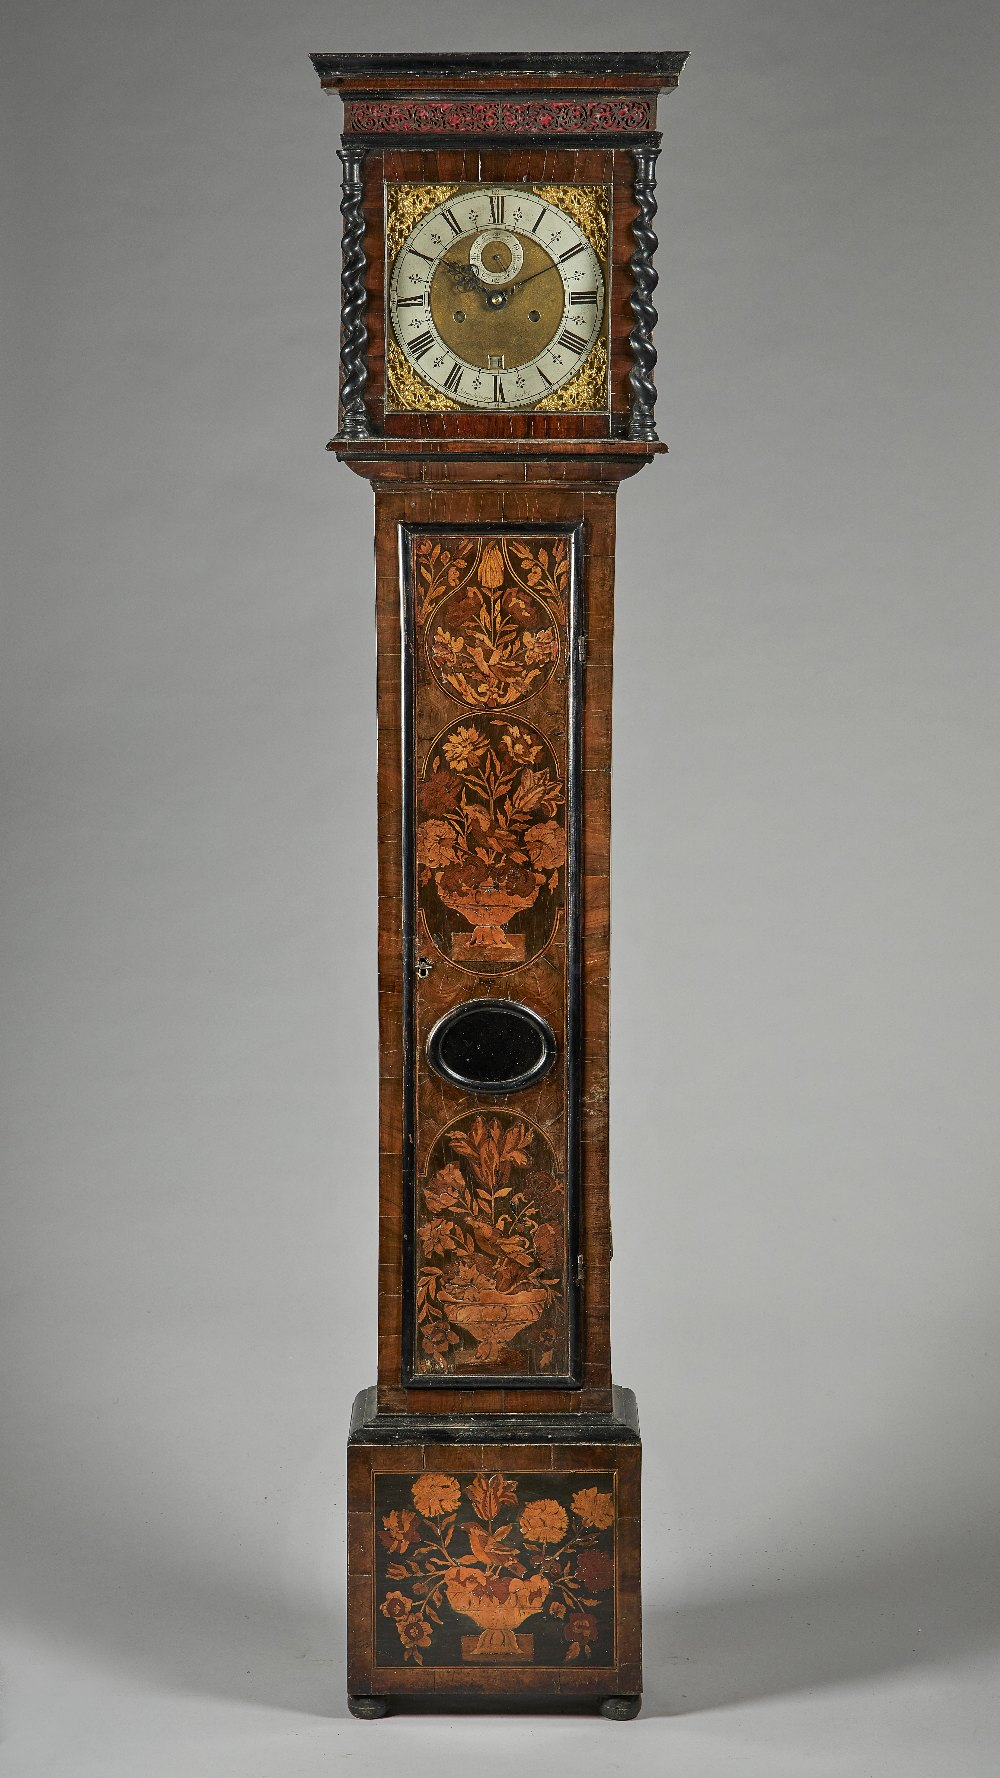 Lot 645 - A walnut and marquetry longcase clock By Solomon Bouquet, London,